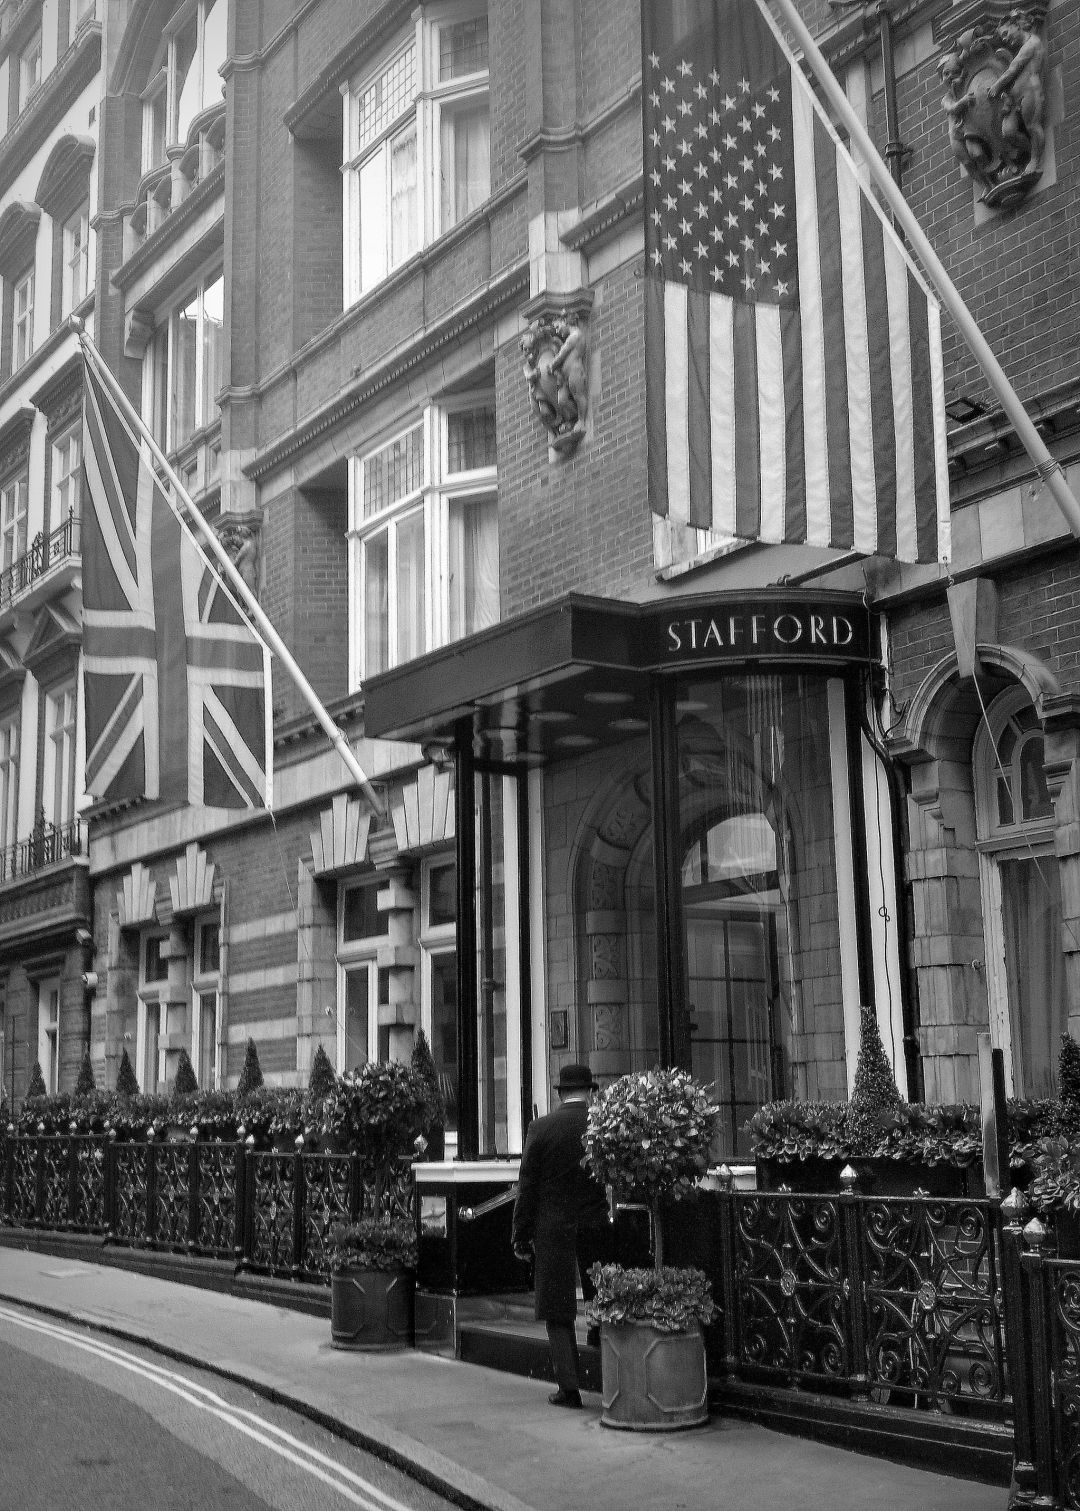 The Game Bird London is situated in The Stafford Hotel Mayfair